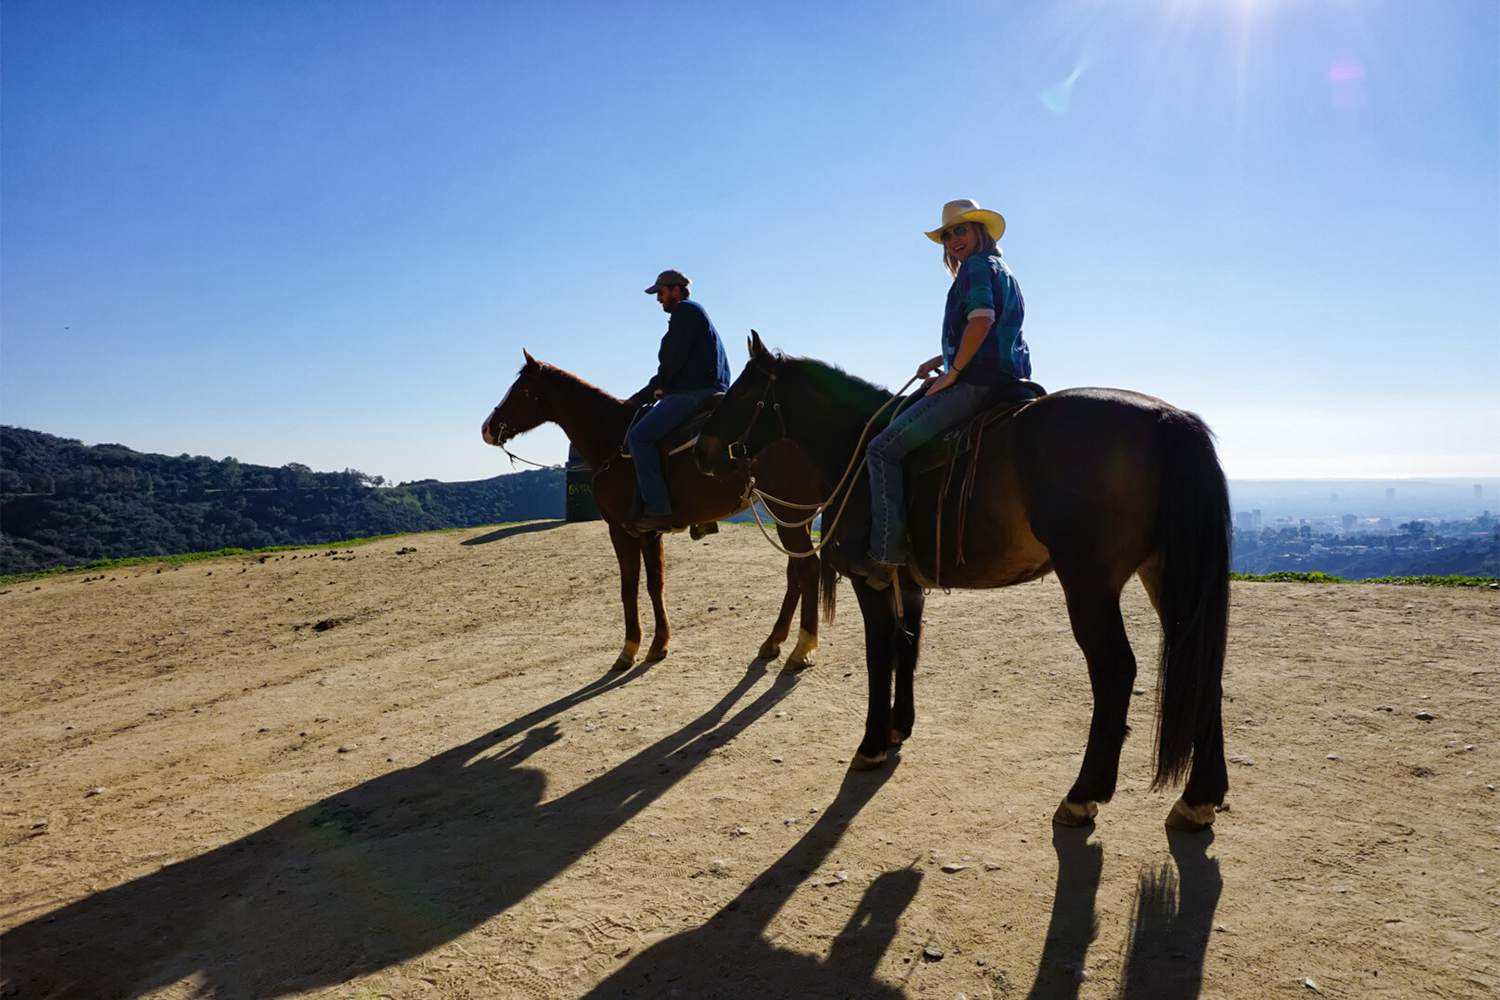 Horseback Riding in Griffith Observatory Park